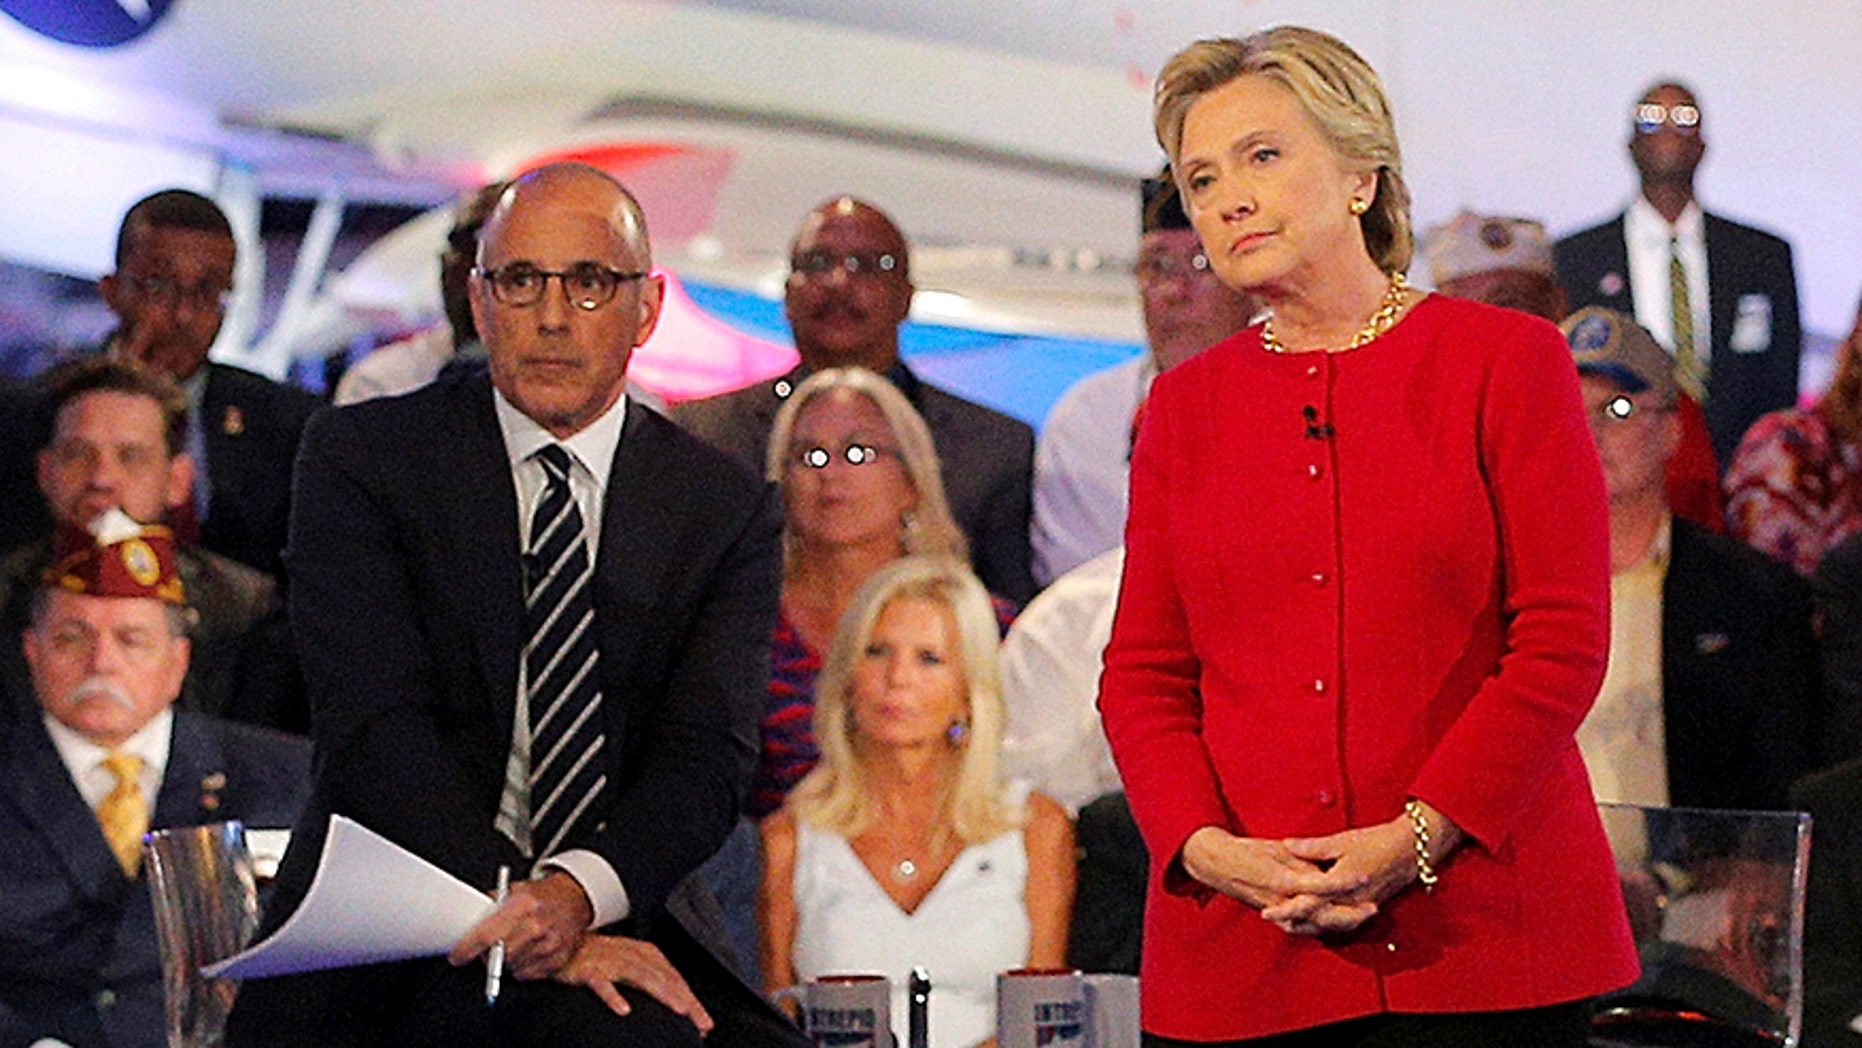 """U.S. Democratic presidential candidate Hillary Clinton speaks at a presidential candidates """"Commander-in-Chief"""" forum, moderated by Matt Lauer (L), aboard the decommissioned aircraft carrier """"Intrepid"""" in New York, New York, United States September 7, 2016."""